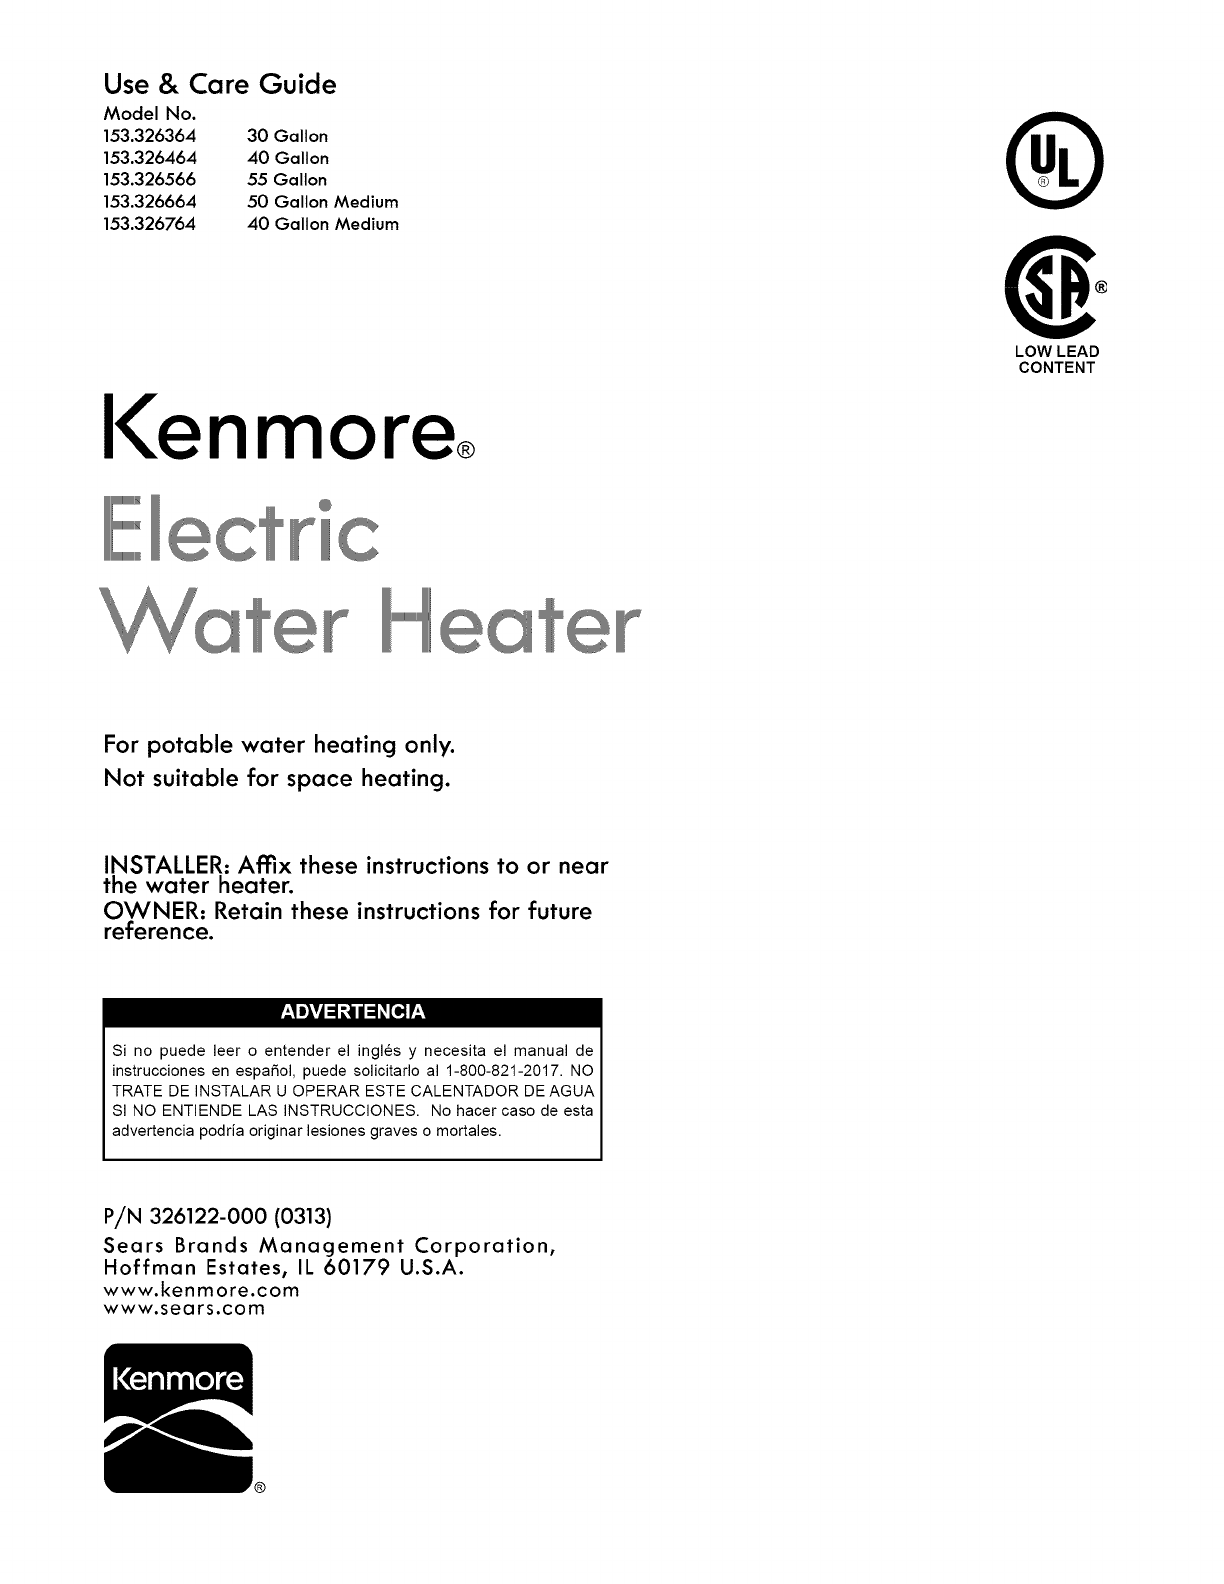 Kenmore 153326364 User Manual WATER HEATER Manuals And ... on water heater lighting, water heater frame, water heater thermostat diagram, water heater exhaust diagram, water heater fuse replacement, water heater controls diagram, water heater radiator diagram, water heater exploded view, water heater electrical schematic, water heater breaker box, water heater repair, water heater ladder diagram, titan water heater diagram, water heater interior diagram, water heater installation, heat pump water heater diagram, water heater transformer, water heater system diagram, water heater vent diagram, water heater cutaway view,